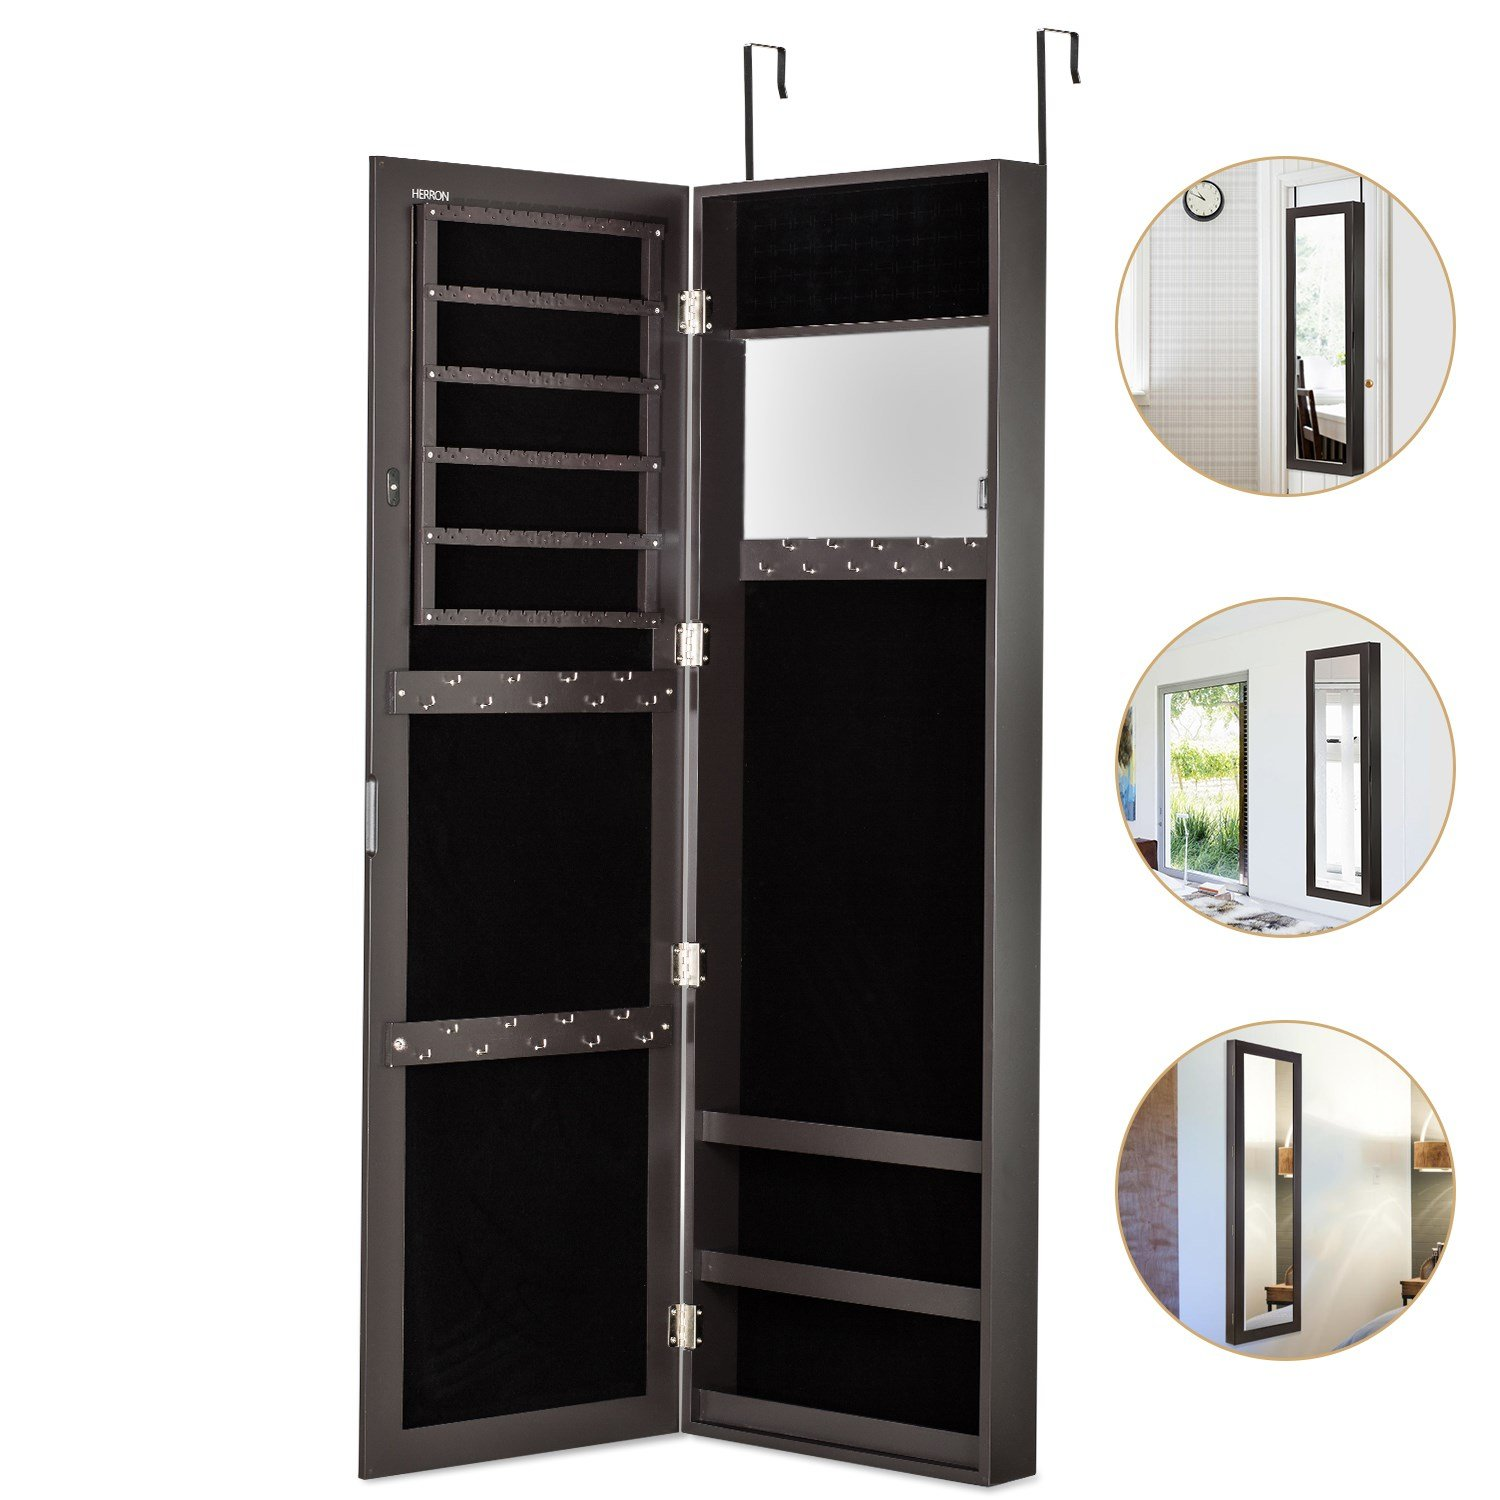 HERRON Jewelry Armoire with Mirror Door or Wall Mounted Jewelry Cabinet Organizer for Women,Black